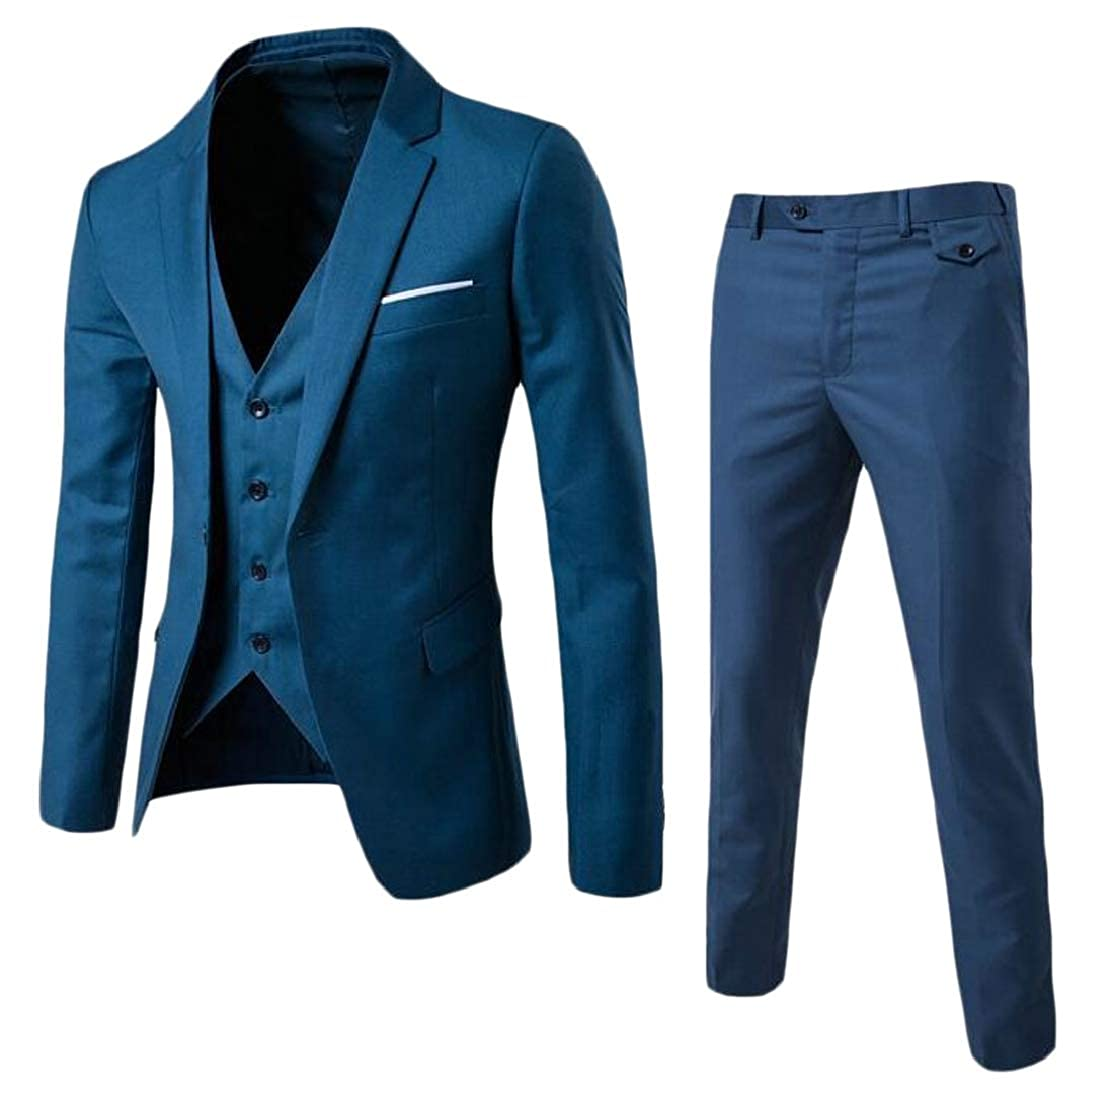 H/&E Mens Groomsmen Wedding Party Three Piece Business Groom Suit Sets